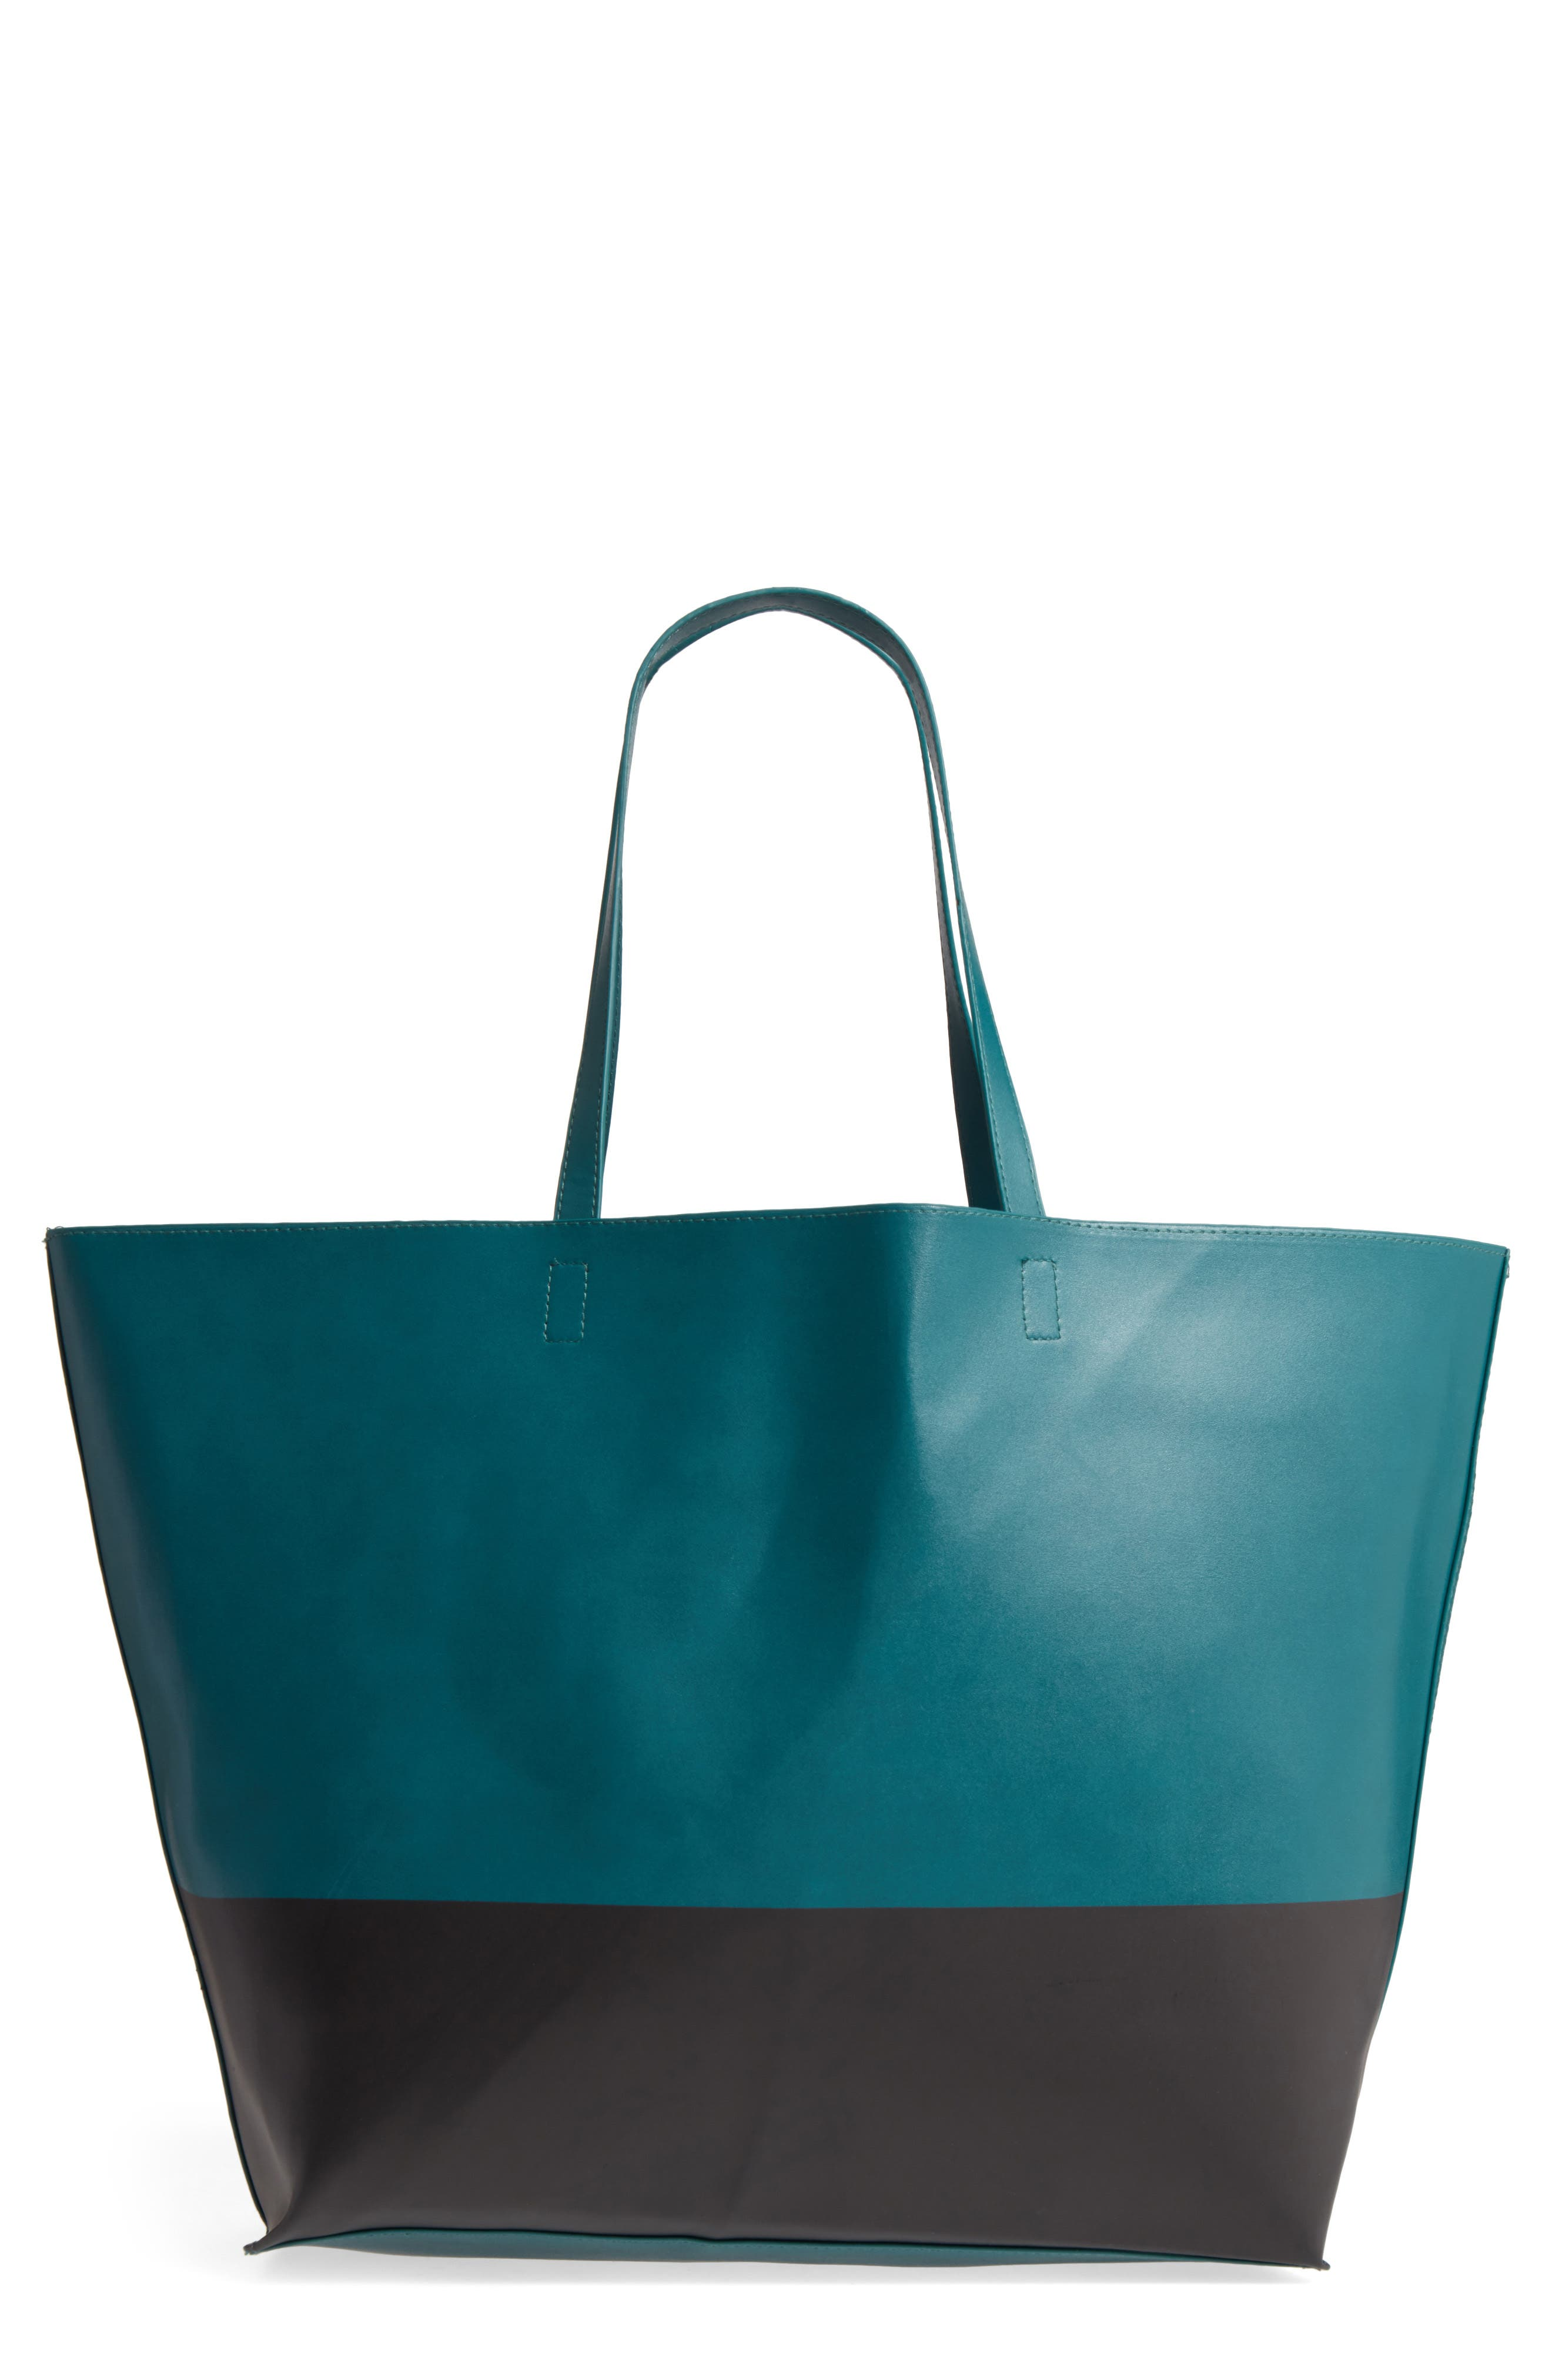 BP. Totes Tote Bags for Women: Canvas, Leather, Nylon & More ...